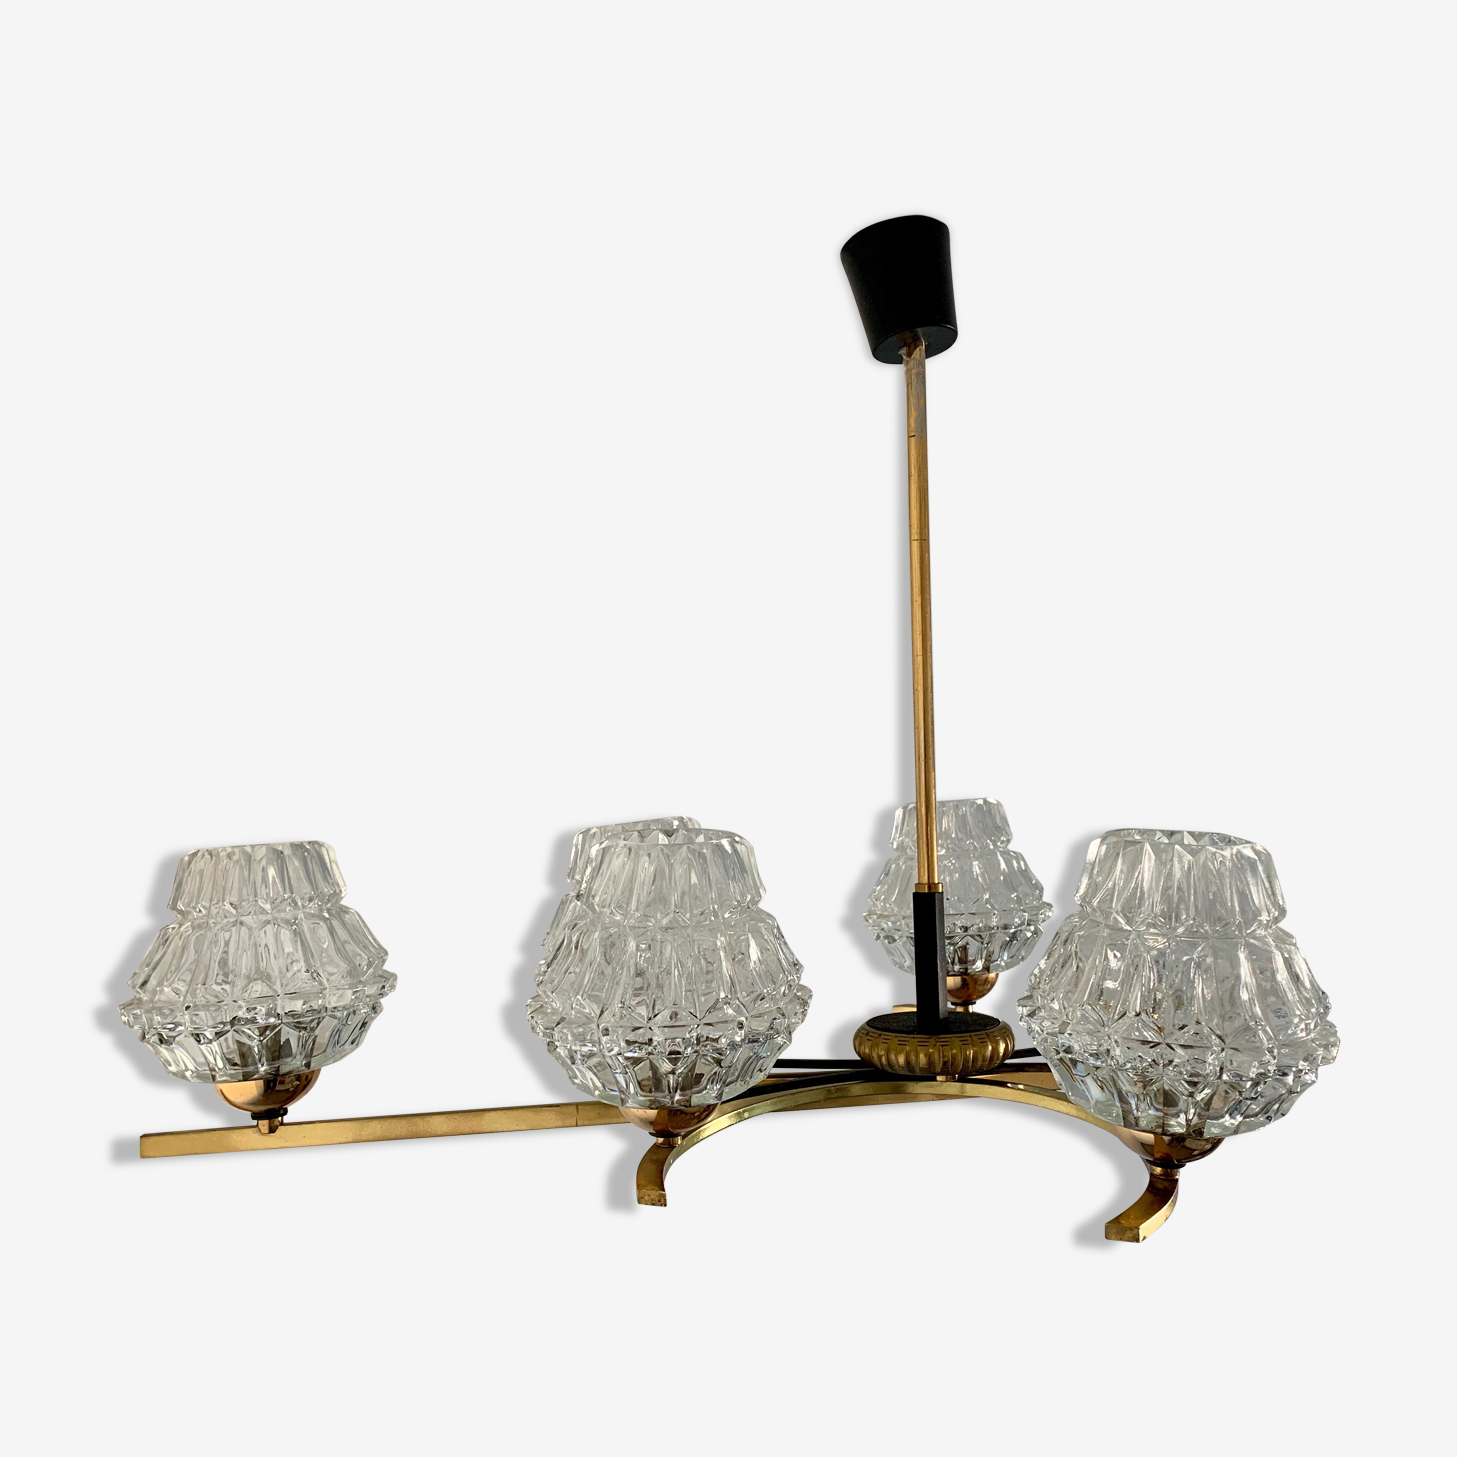 Chandelier glass and structure 60 year gold metal